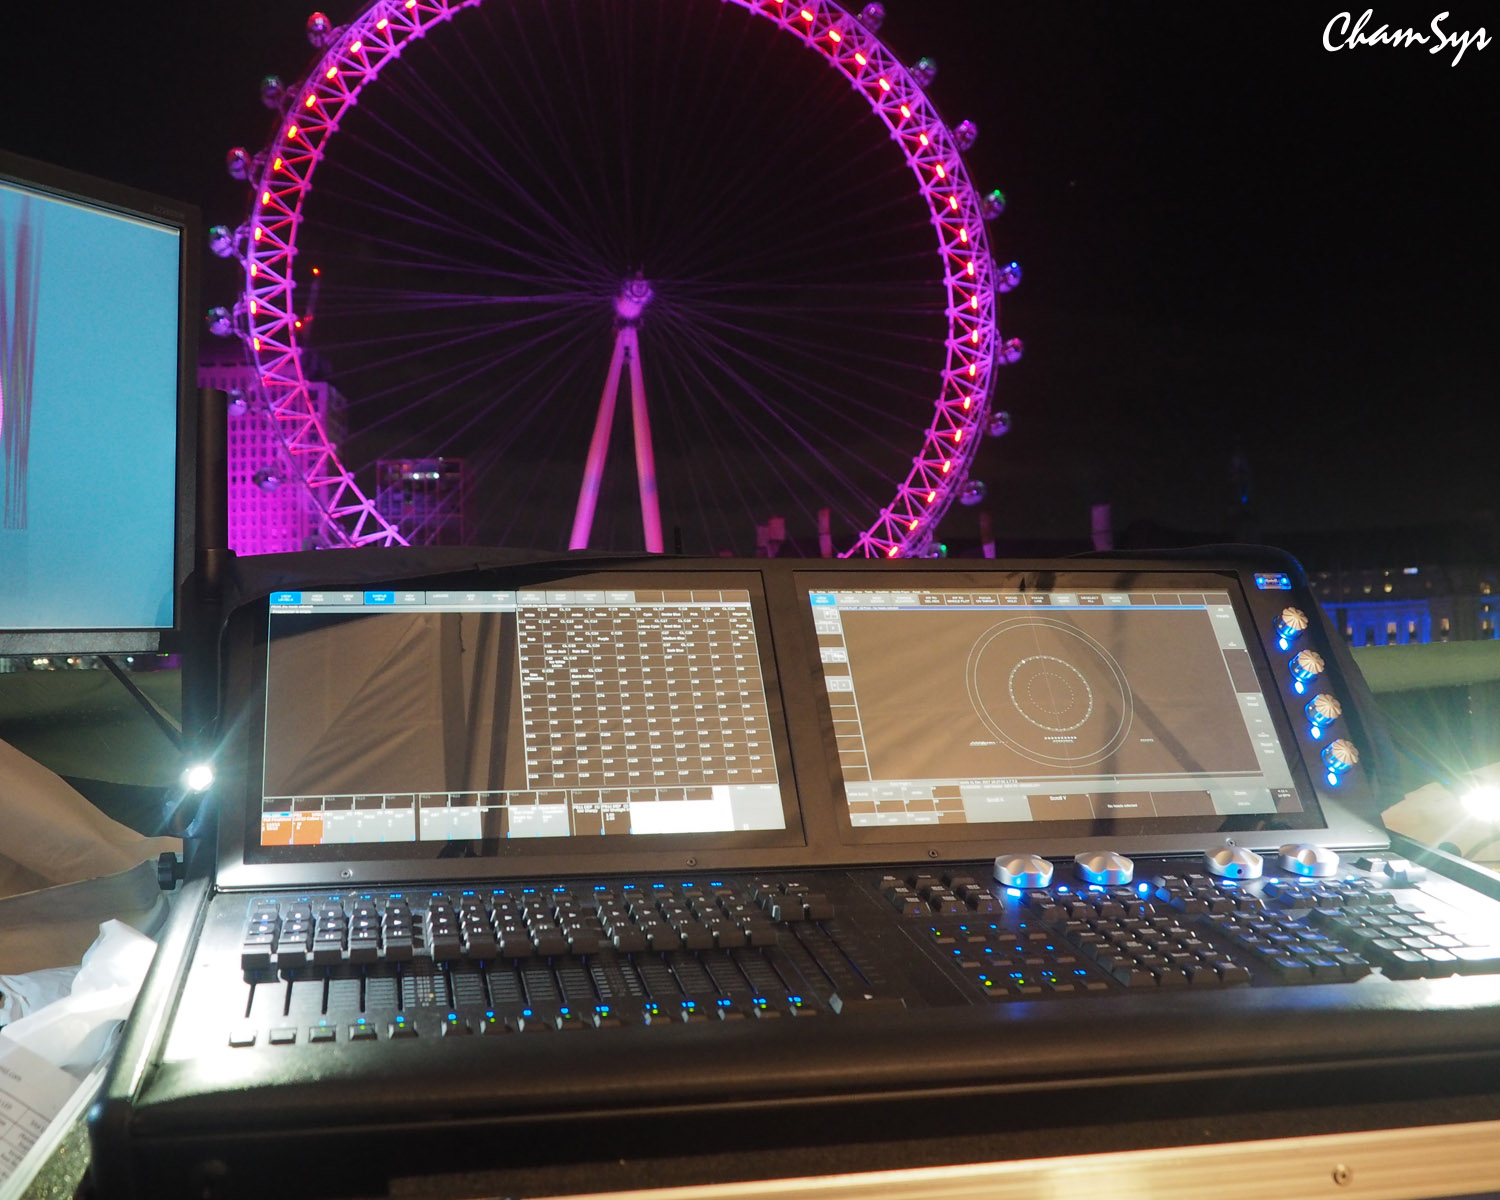 ChamSys celebrates the New Year in style at London's Annual Firework Display